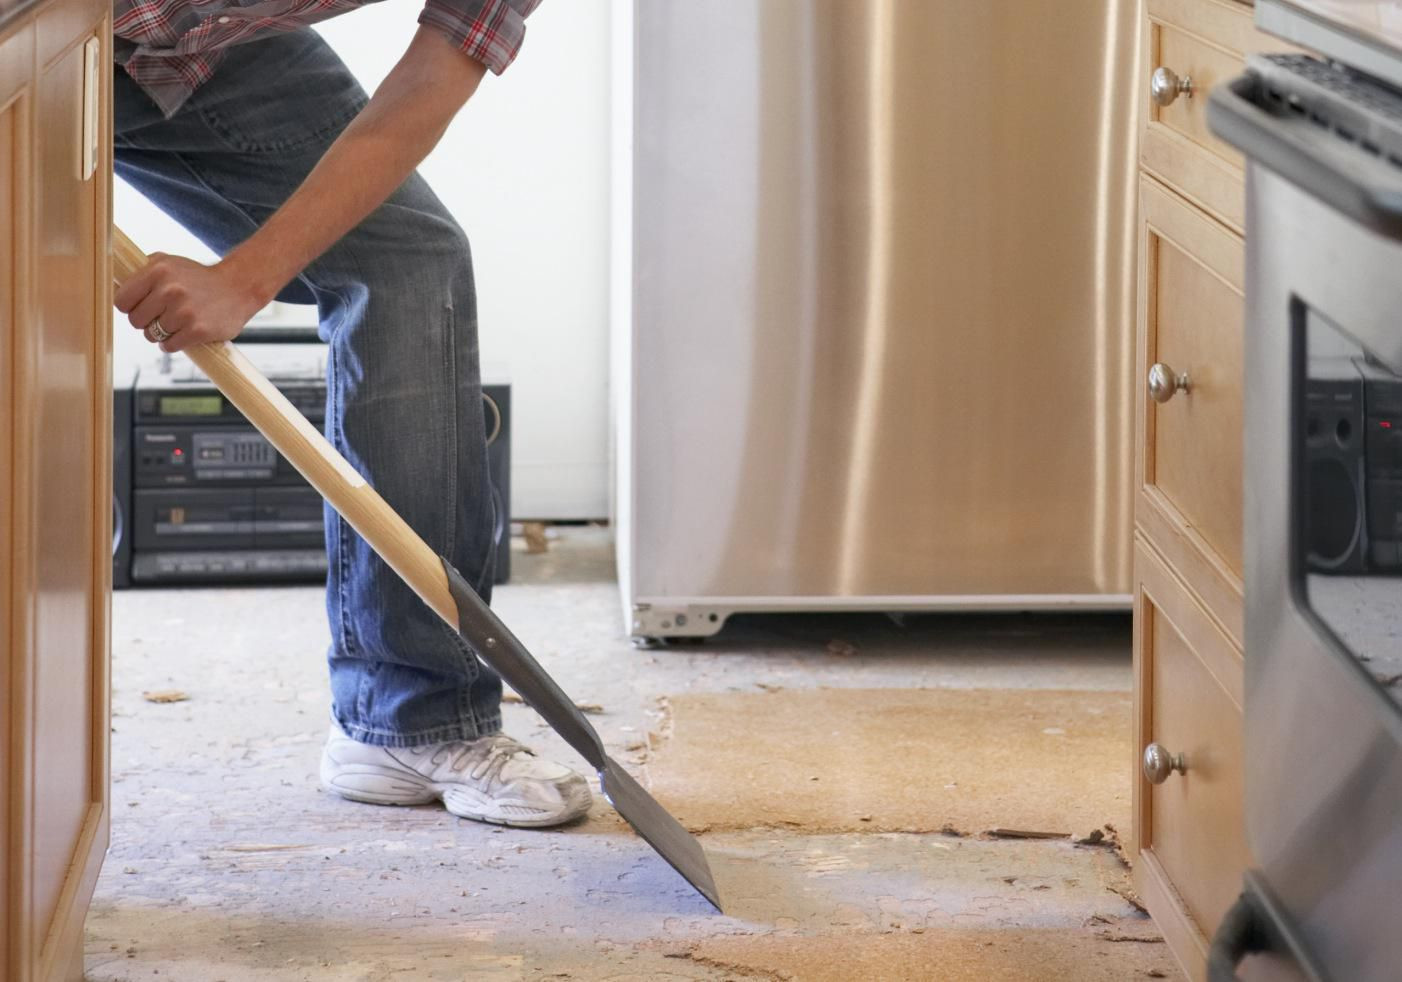 how to put down hardwood floor on concrete of flooring and cabinets which to install first with 200467183 001 56a49ecb3df78cf772834d10